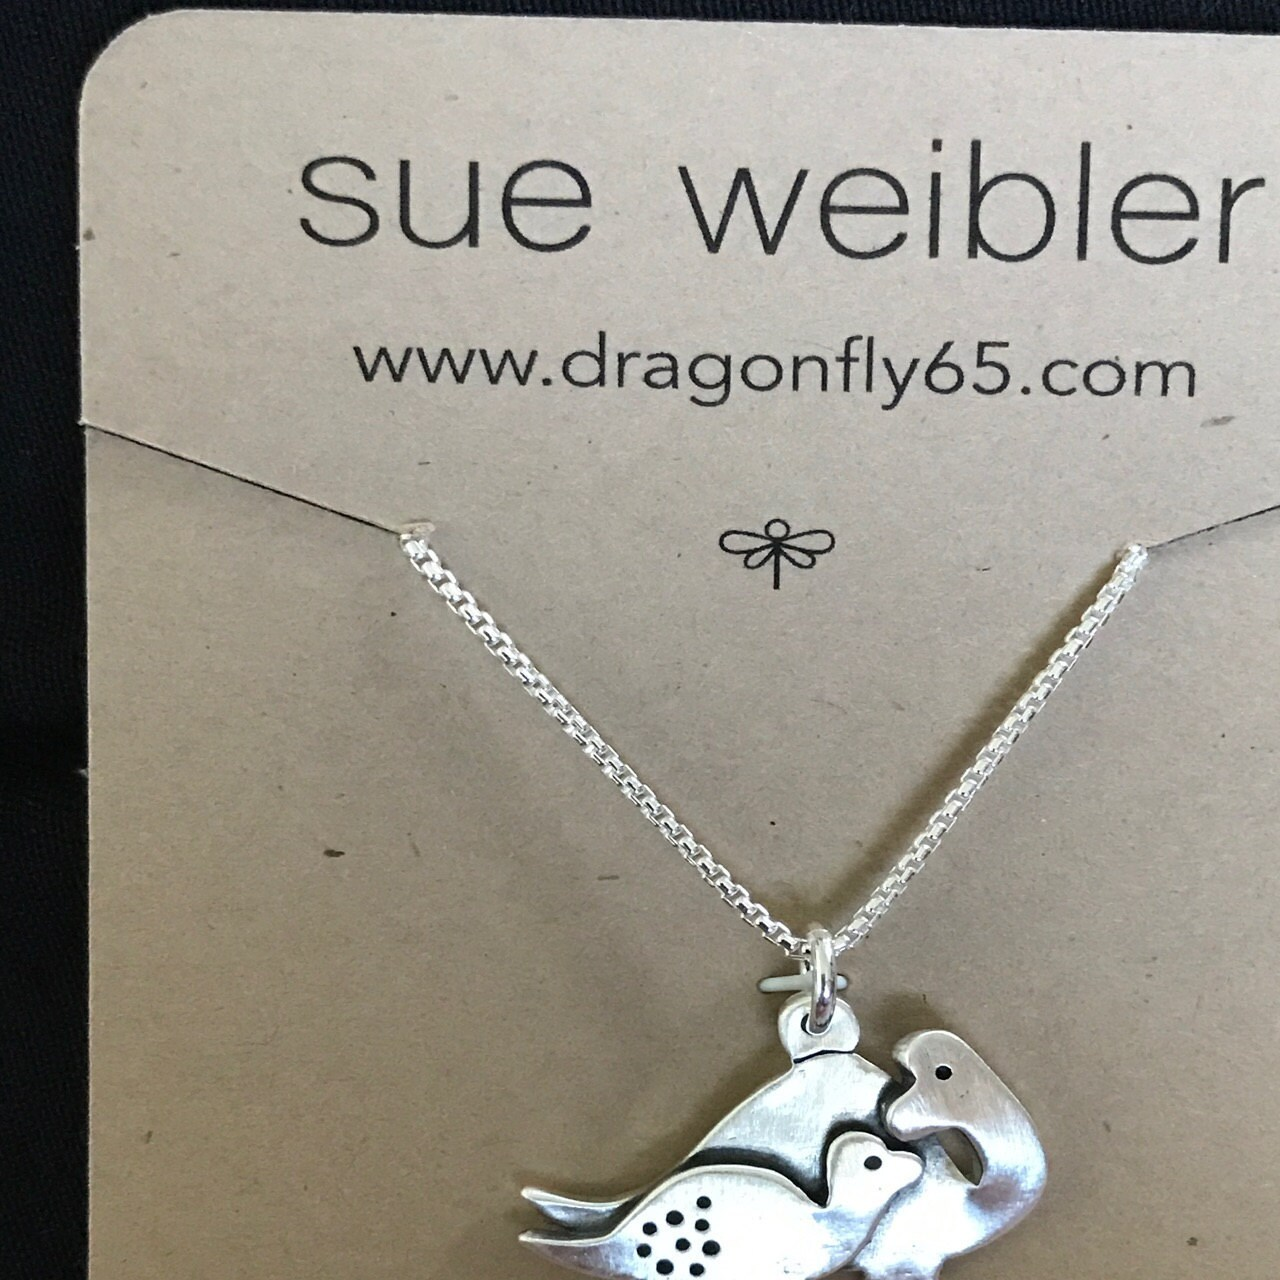 lizmcintyre4 added a photo of their purchase